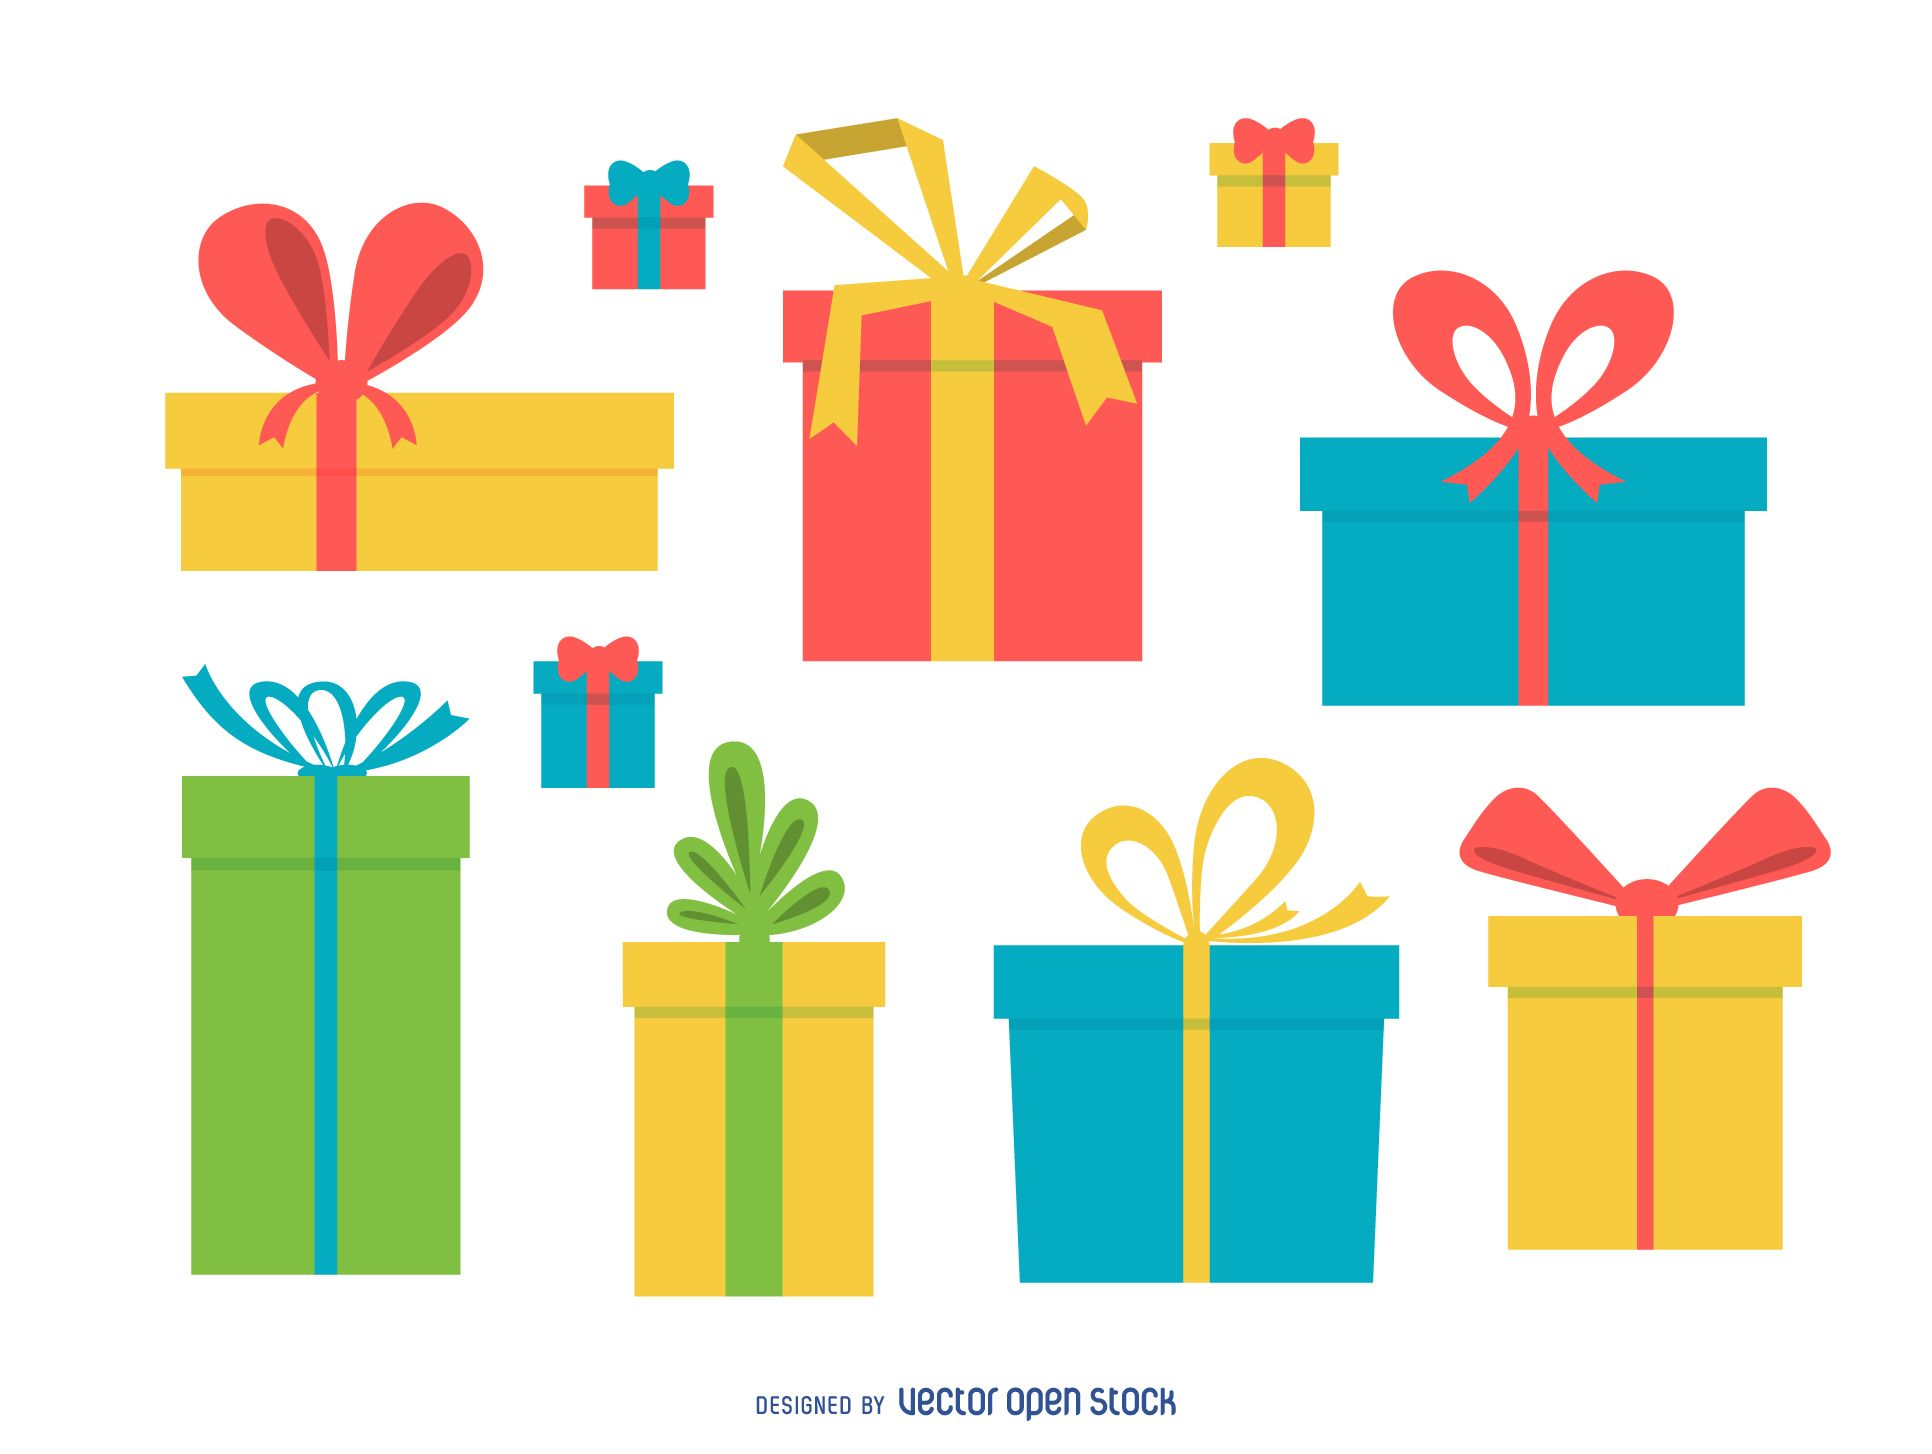 Set Of Flat Illustrations Featuring Gift Boxes With Bows